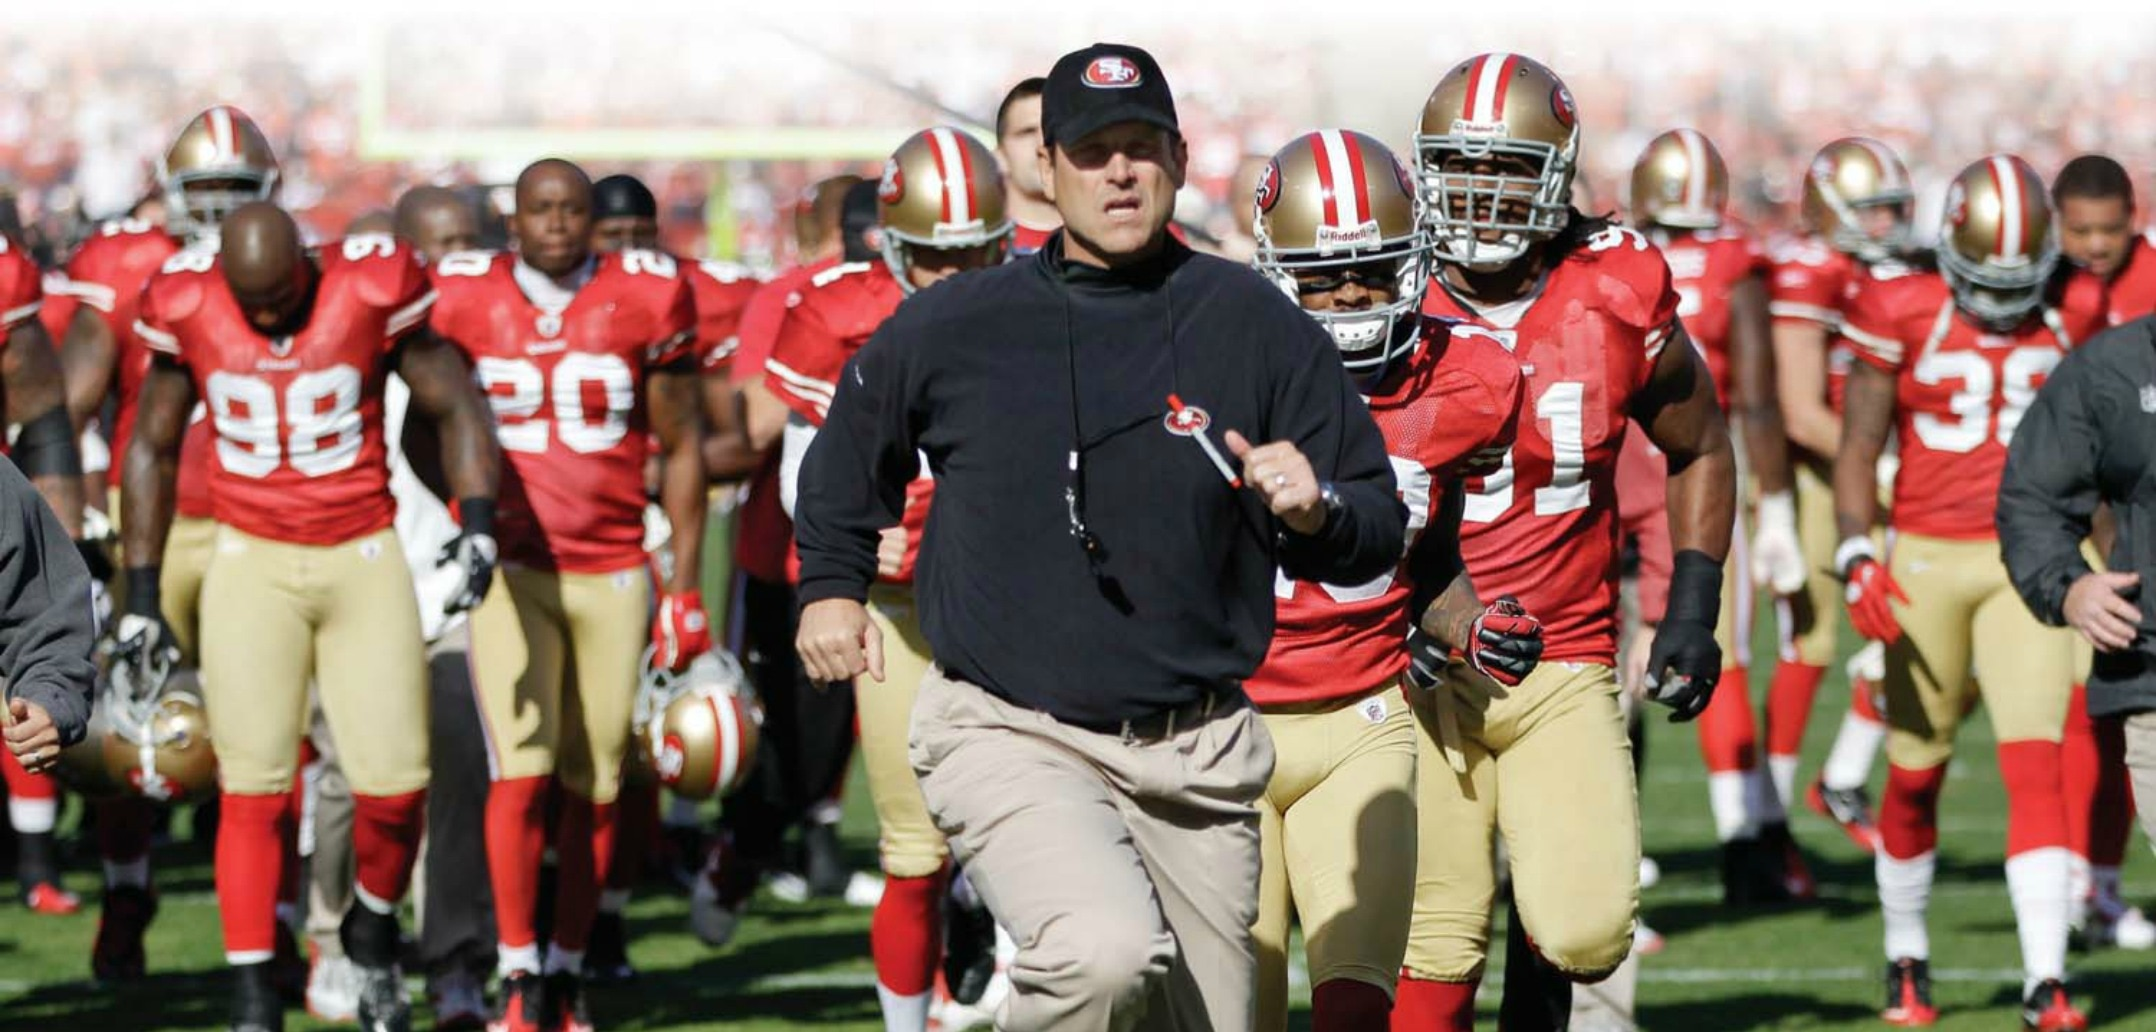 Courtesy of NFL.com: Things were different, but in the some way the same, the first time Harbaugh led San Francisco against the Seahawks.